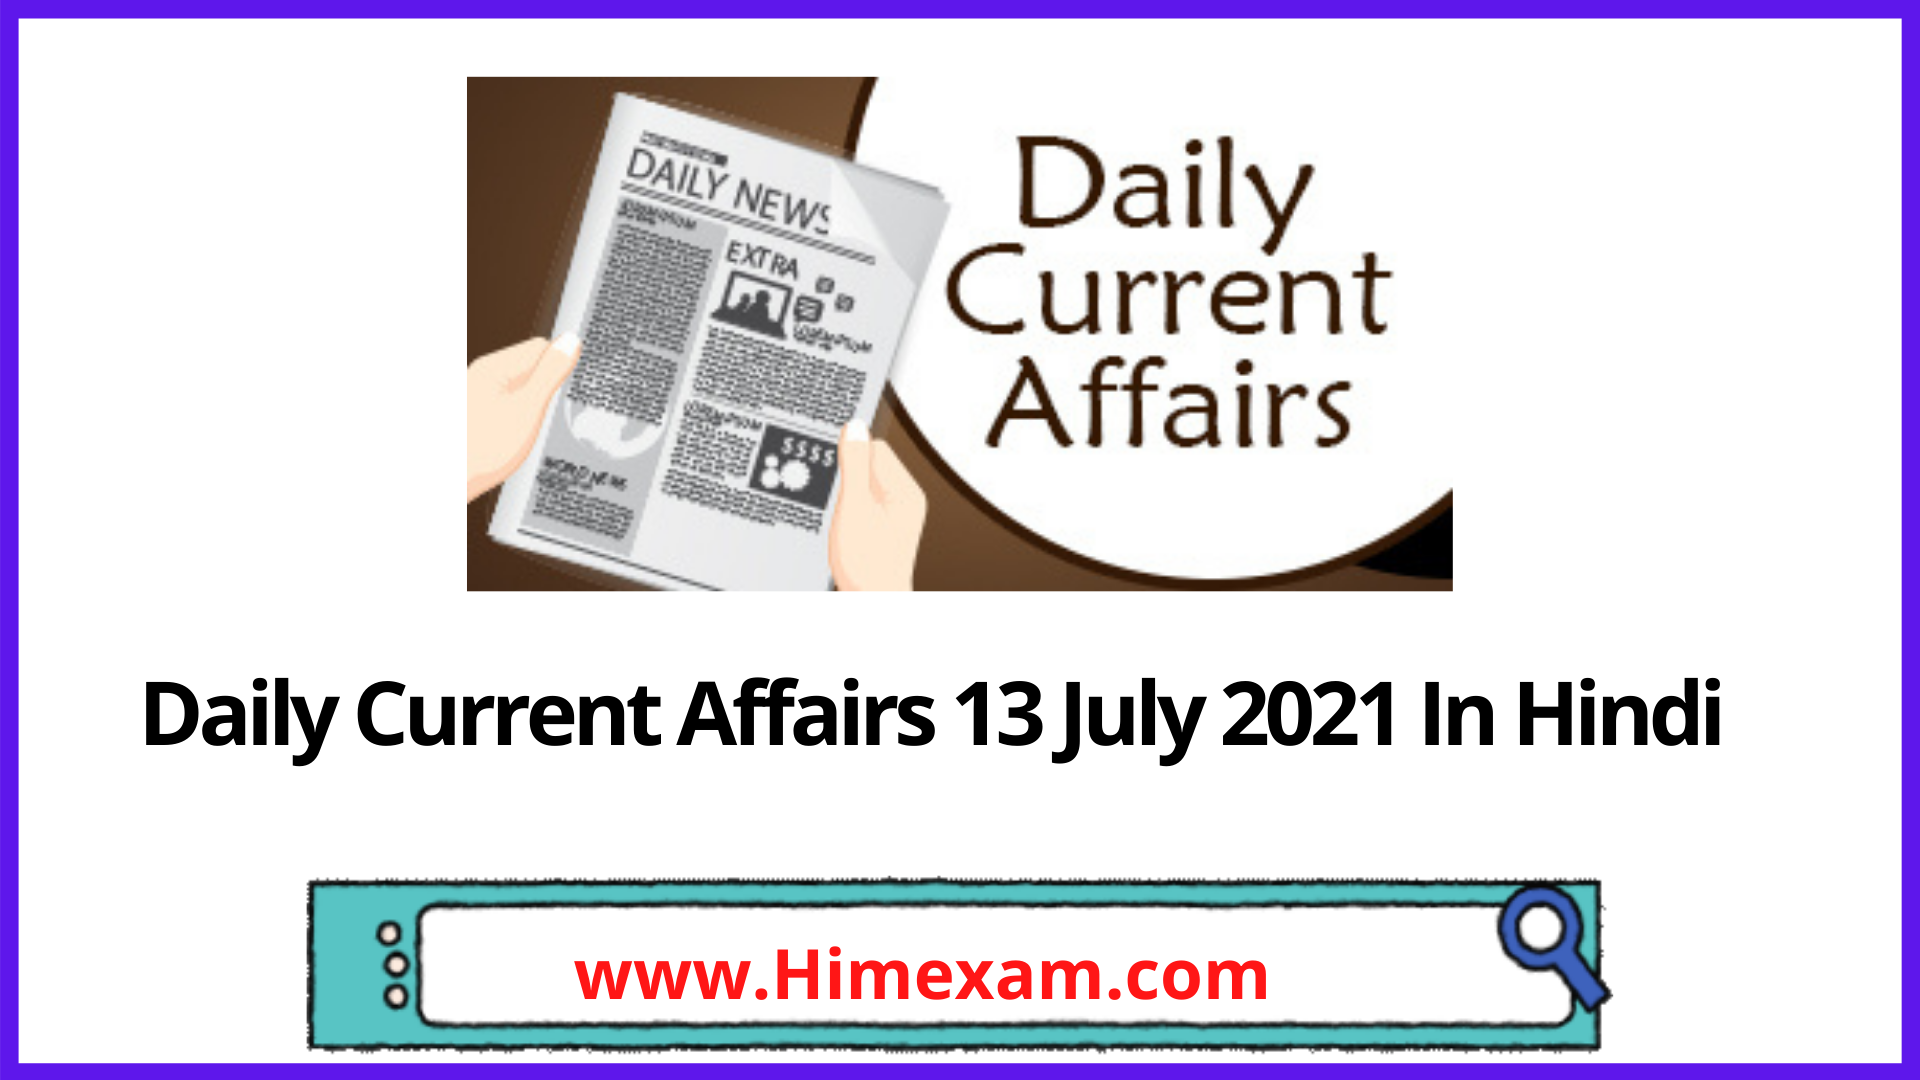 Daily Current Affairs 13 July 2021 In Hindi